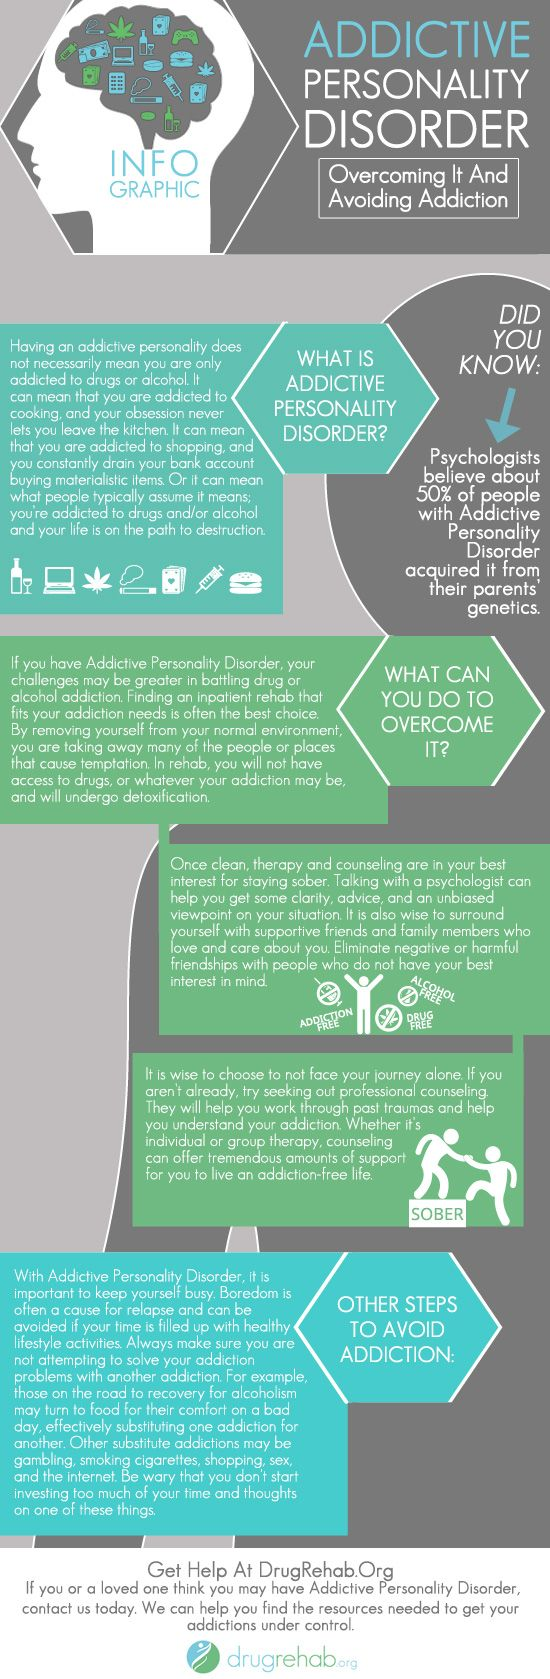 #Infographic About Addictive Personality Behaviors & Disorders – Overcoming…